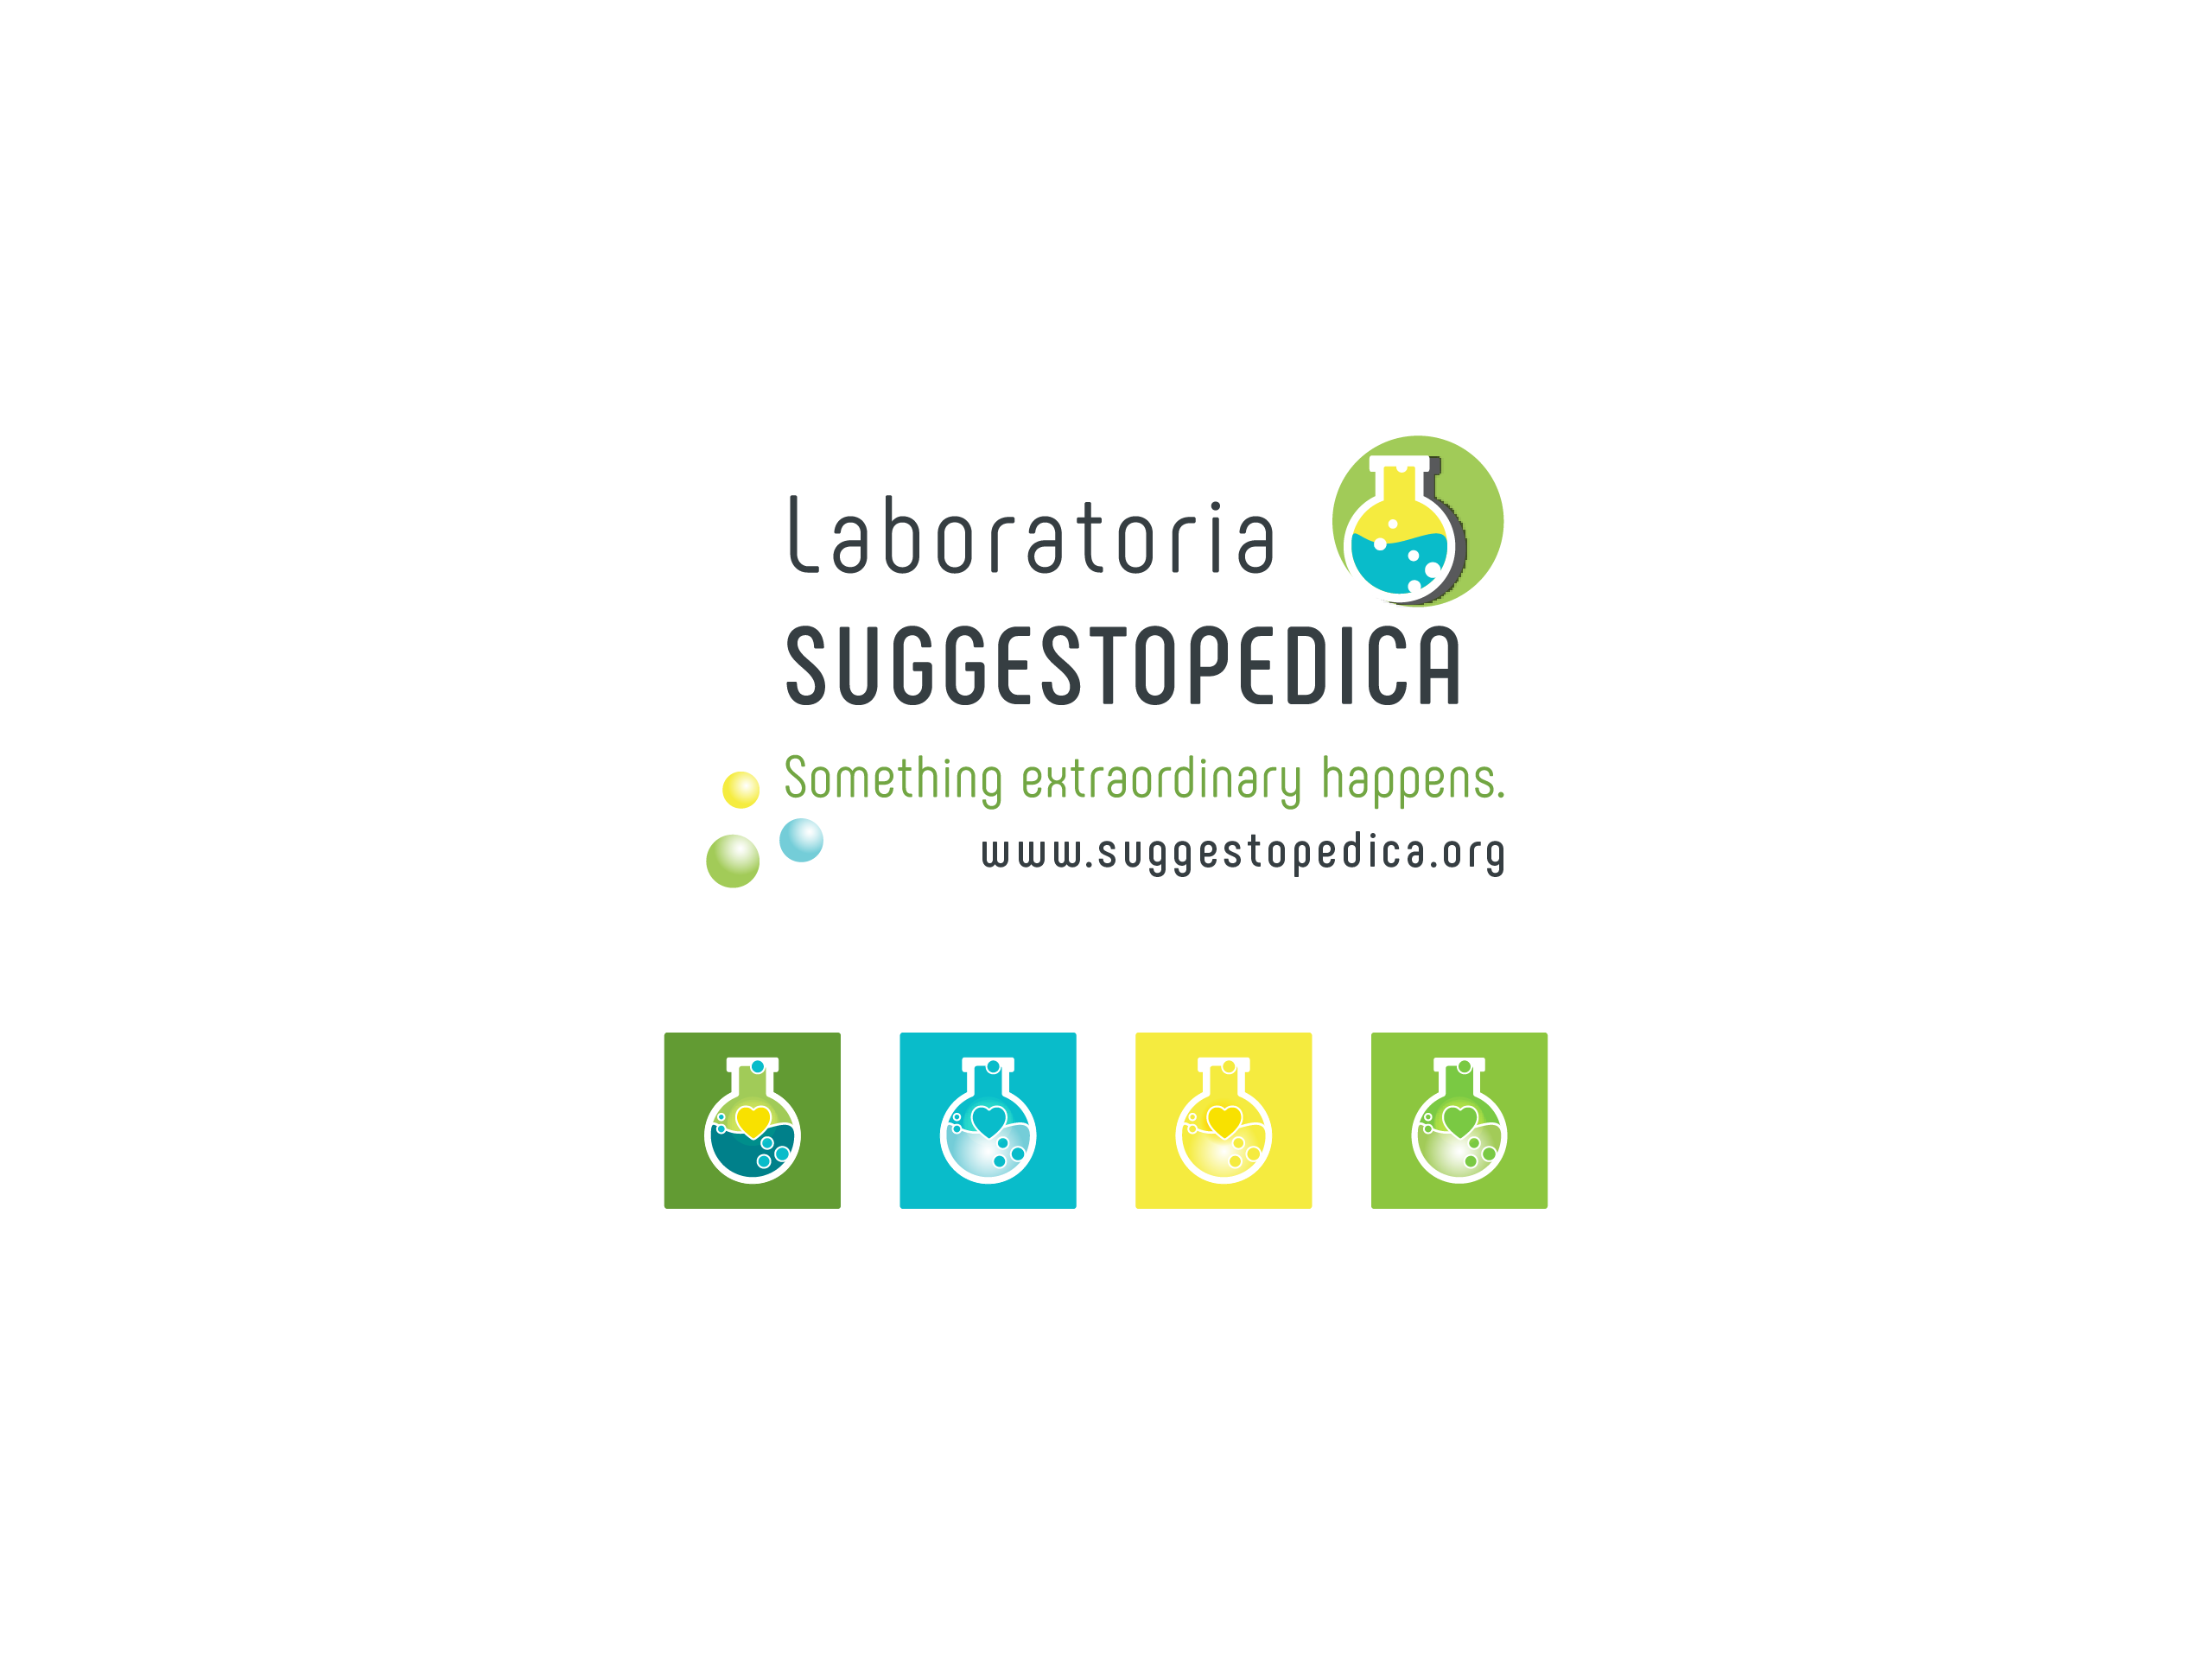 Laboratoria Suggestopedica Logotype by Nadia D.Manning